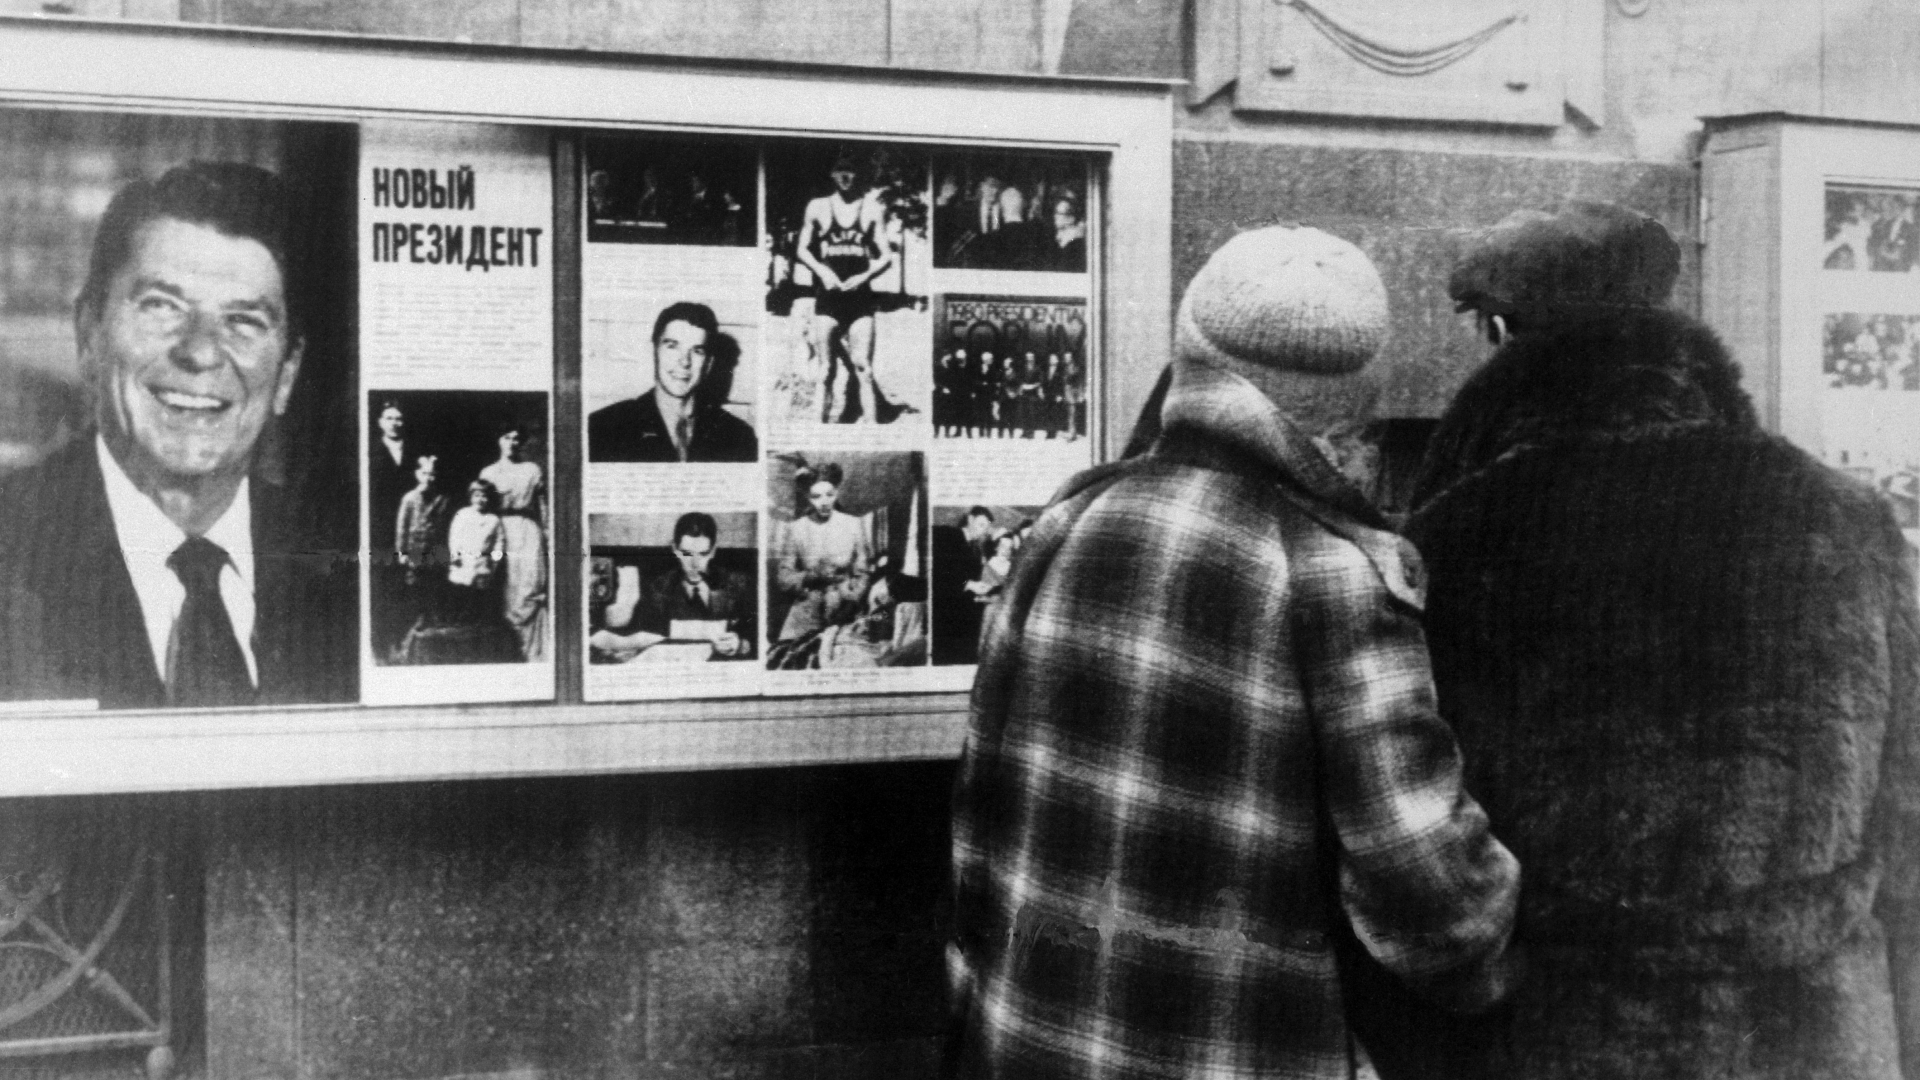 Muscovites stop and glance at a display of photographs of President-Elect Ronald Reagan on outside wall of the U.S. Embassy. (credit: Bettmann/Getty Images)